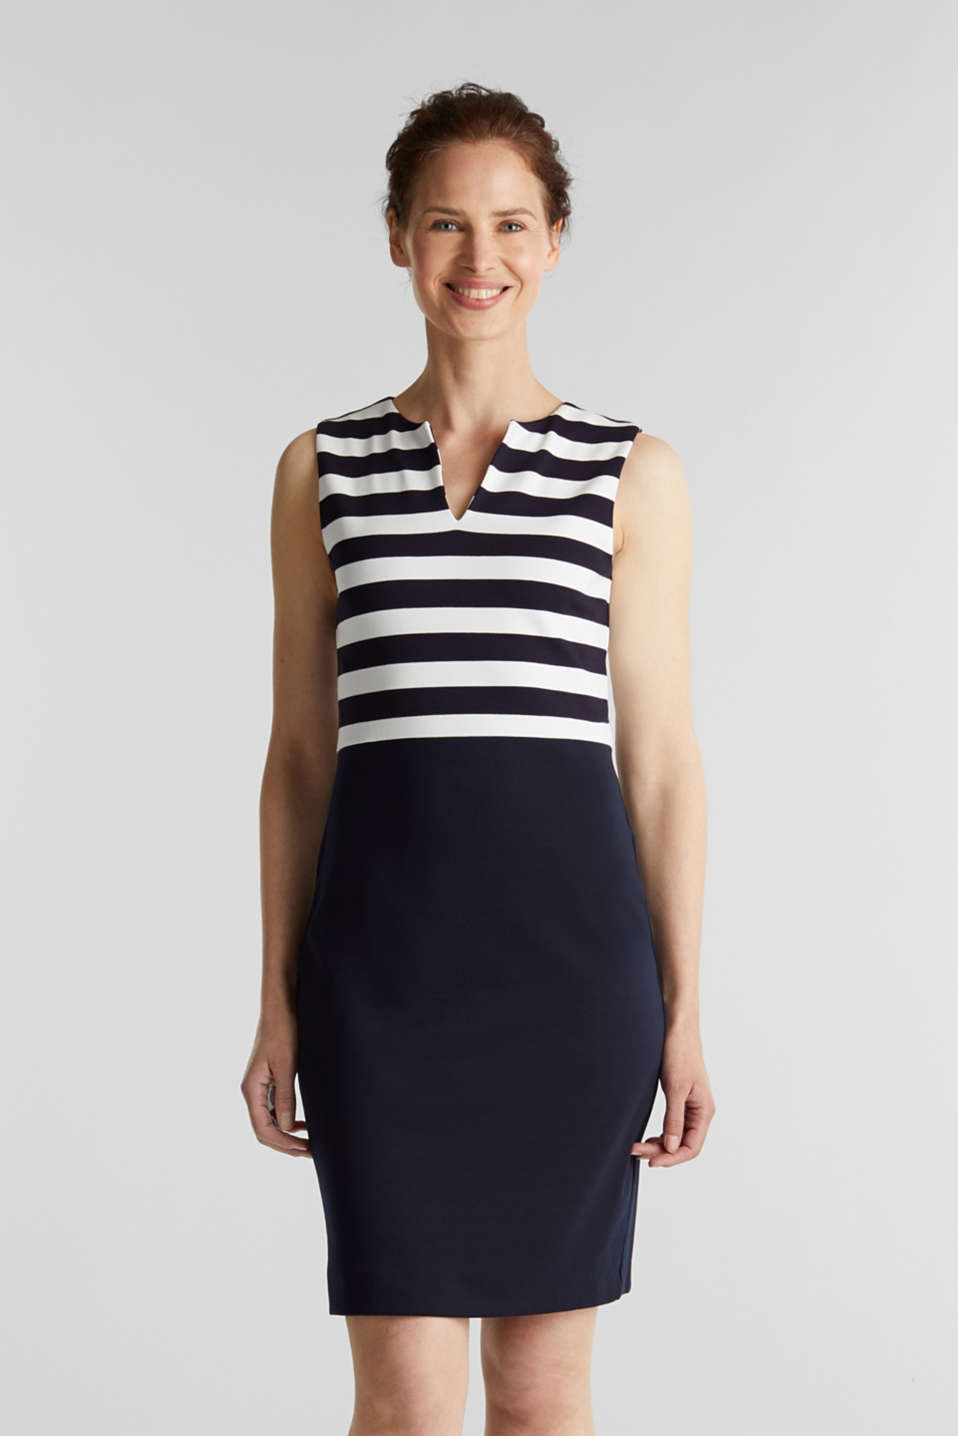 Esprit - Sheath dress made of firm stretch jersey